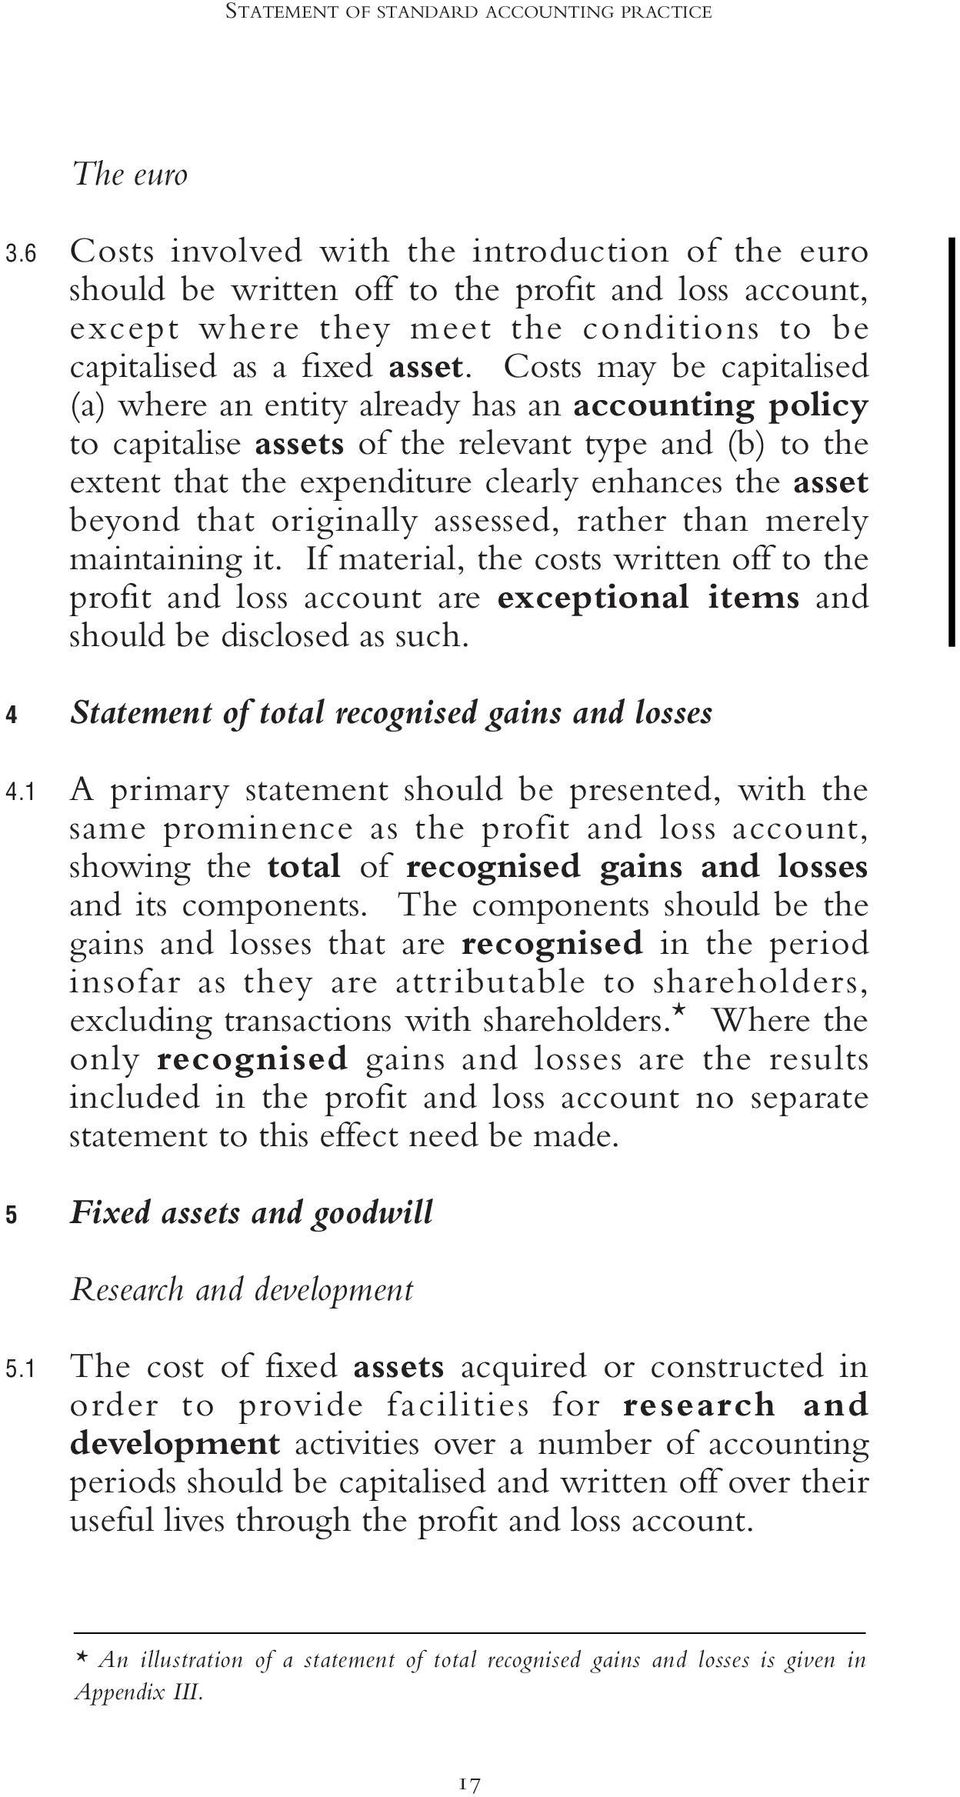 Costs may be capitalised (a) where an entity already has an accounting policy to capitalise assets of the relevant type and (b) to the extent that the expenditure clearly enhances the asset beyond